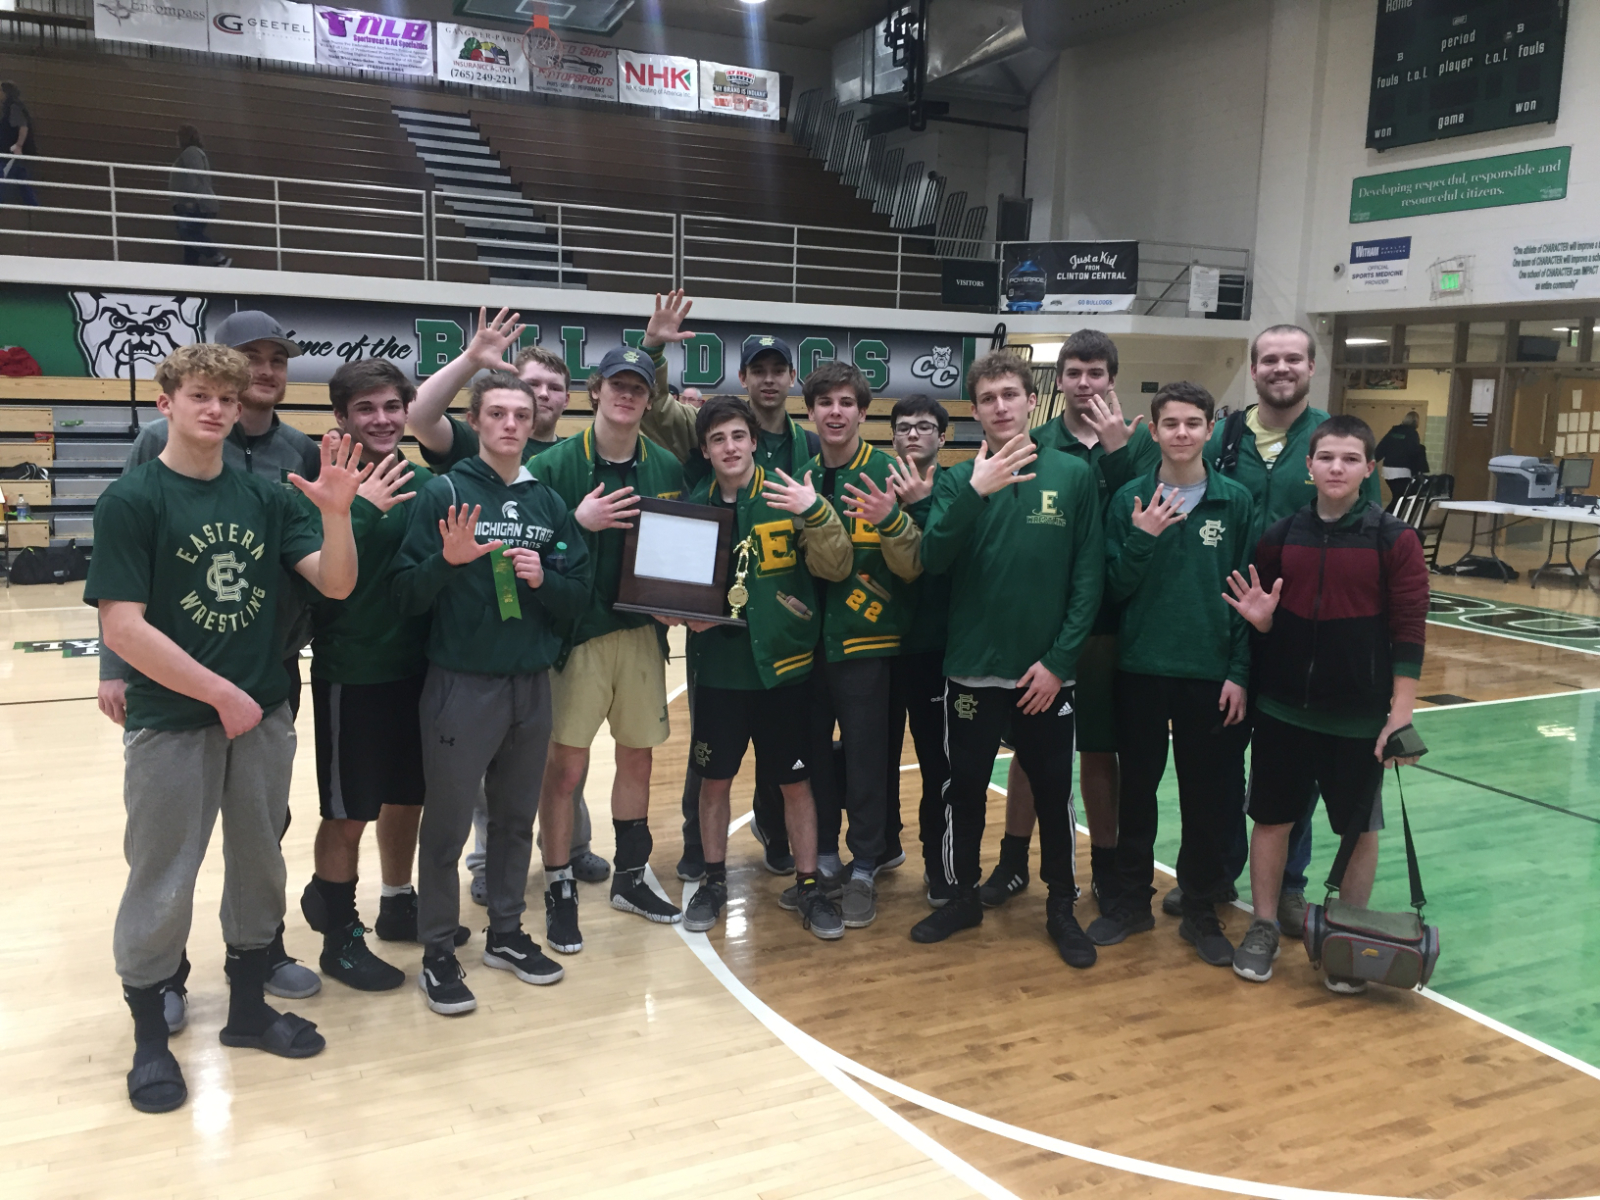 2020 Wrestling Conference Champions!